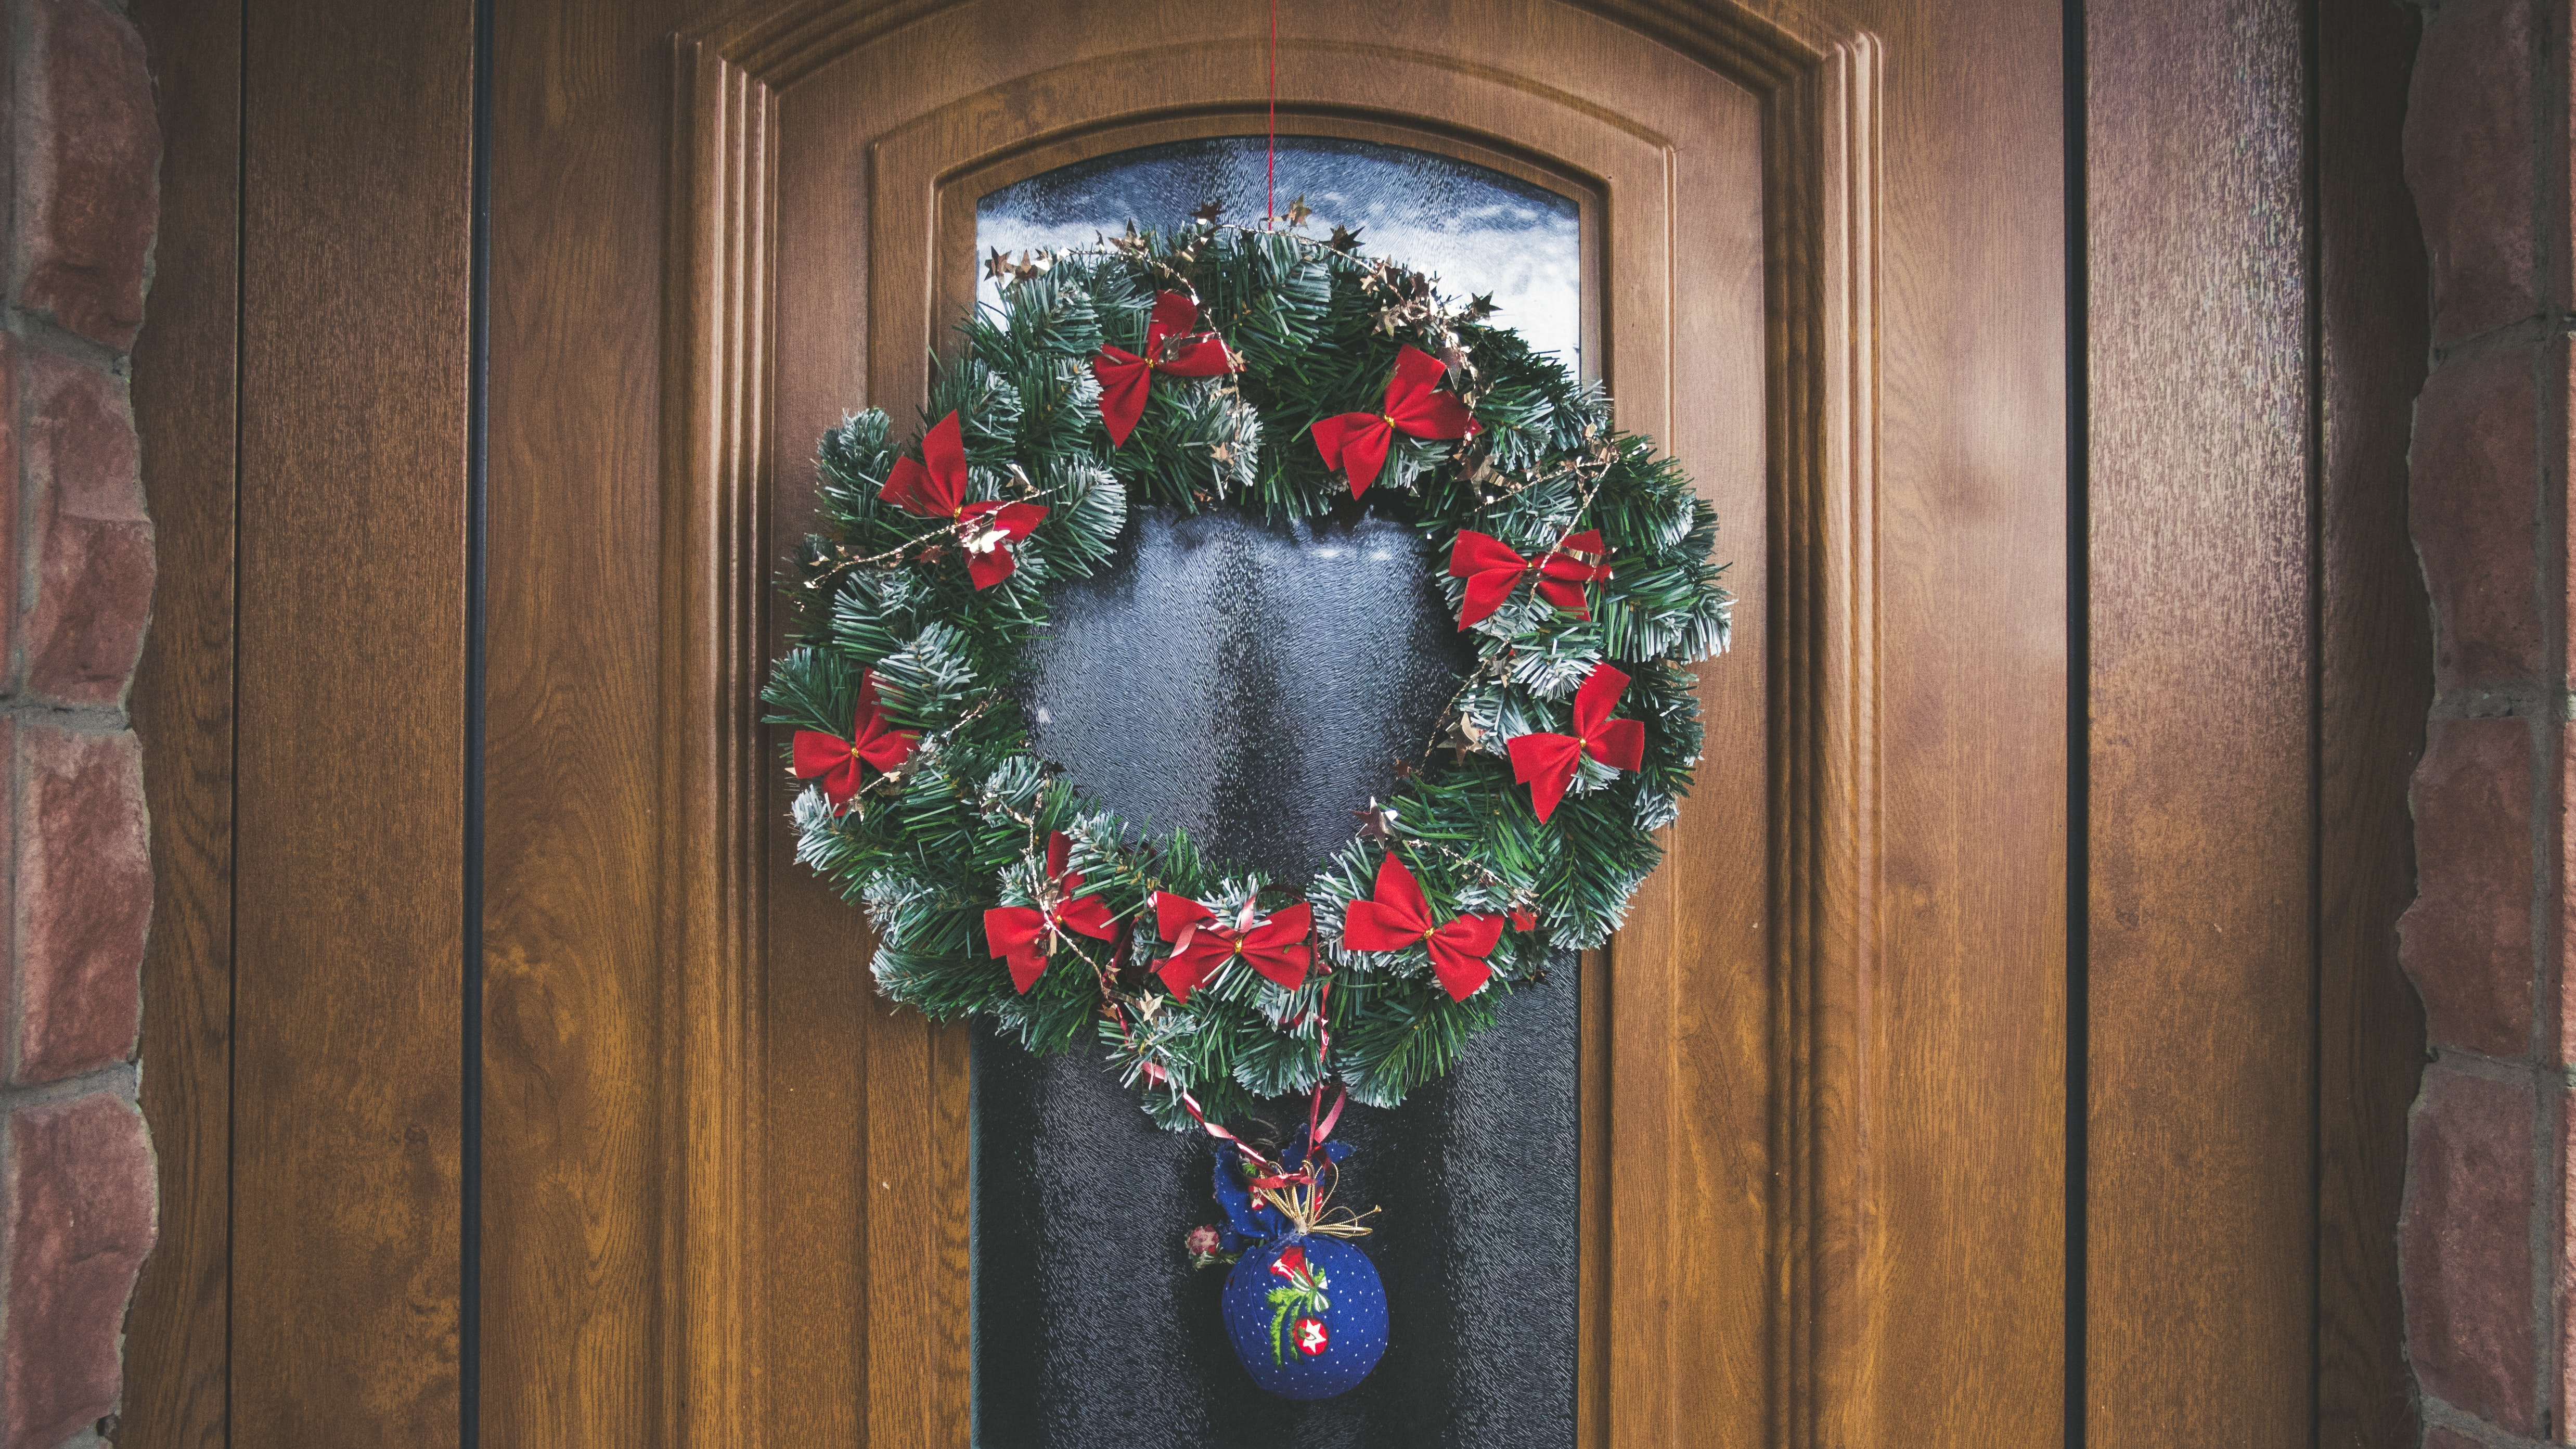 Green And Red Christmas Wreath On Door Free Stock Photo